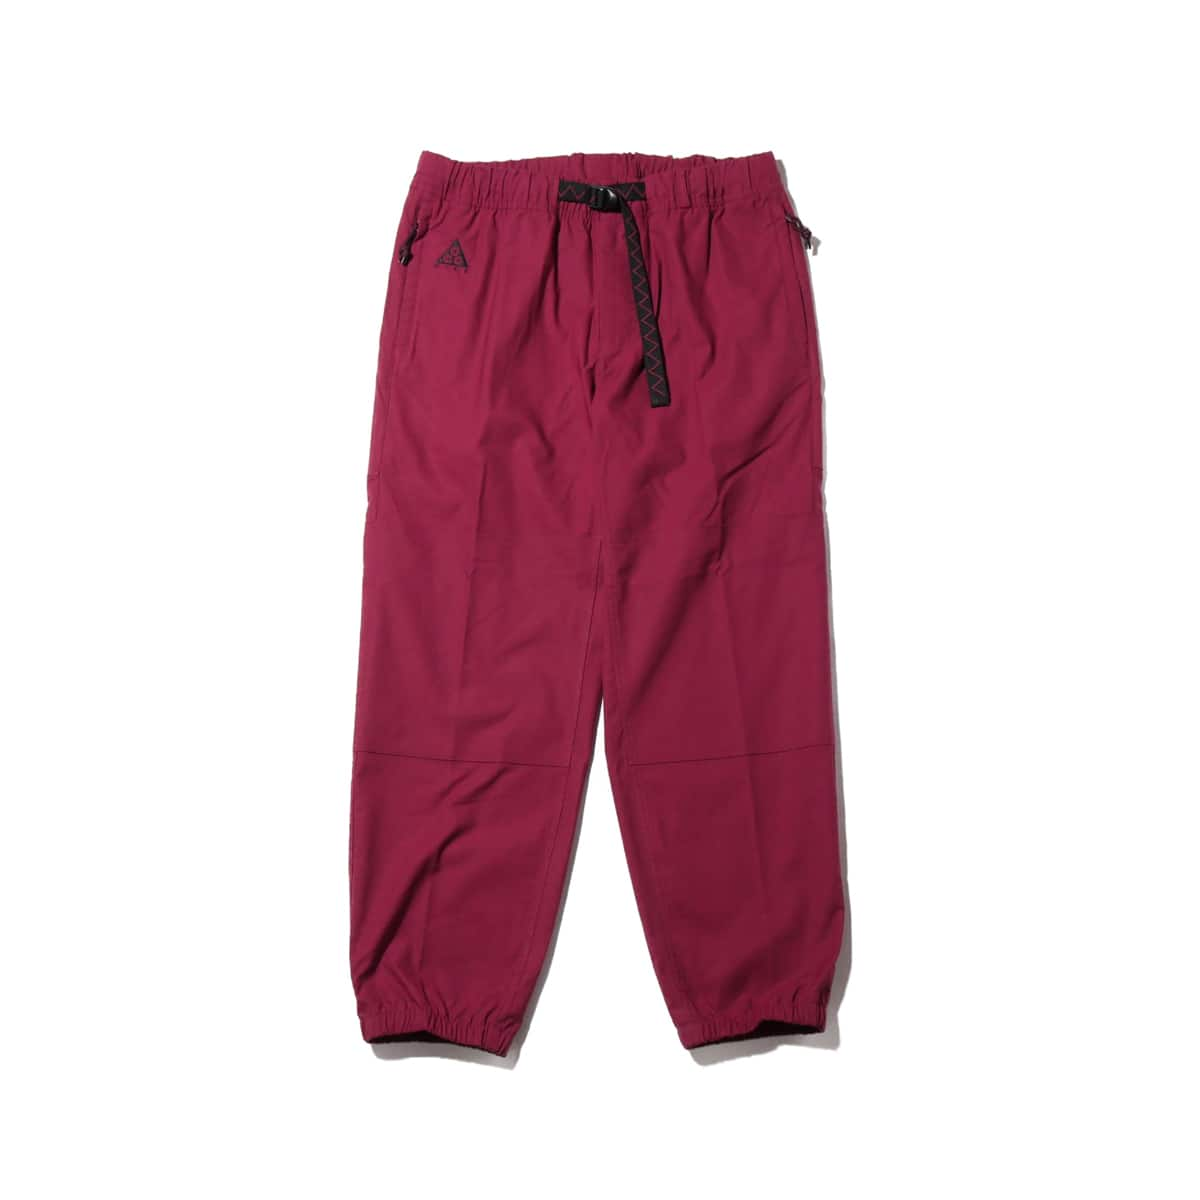 NIKE AS M ACG TRAIL PANT VILLAIN RED/BLACK/BLACK 20SP-S_photo_large